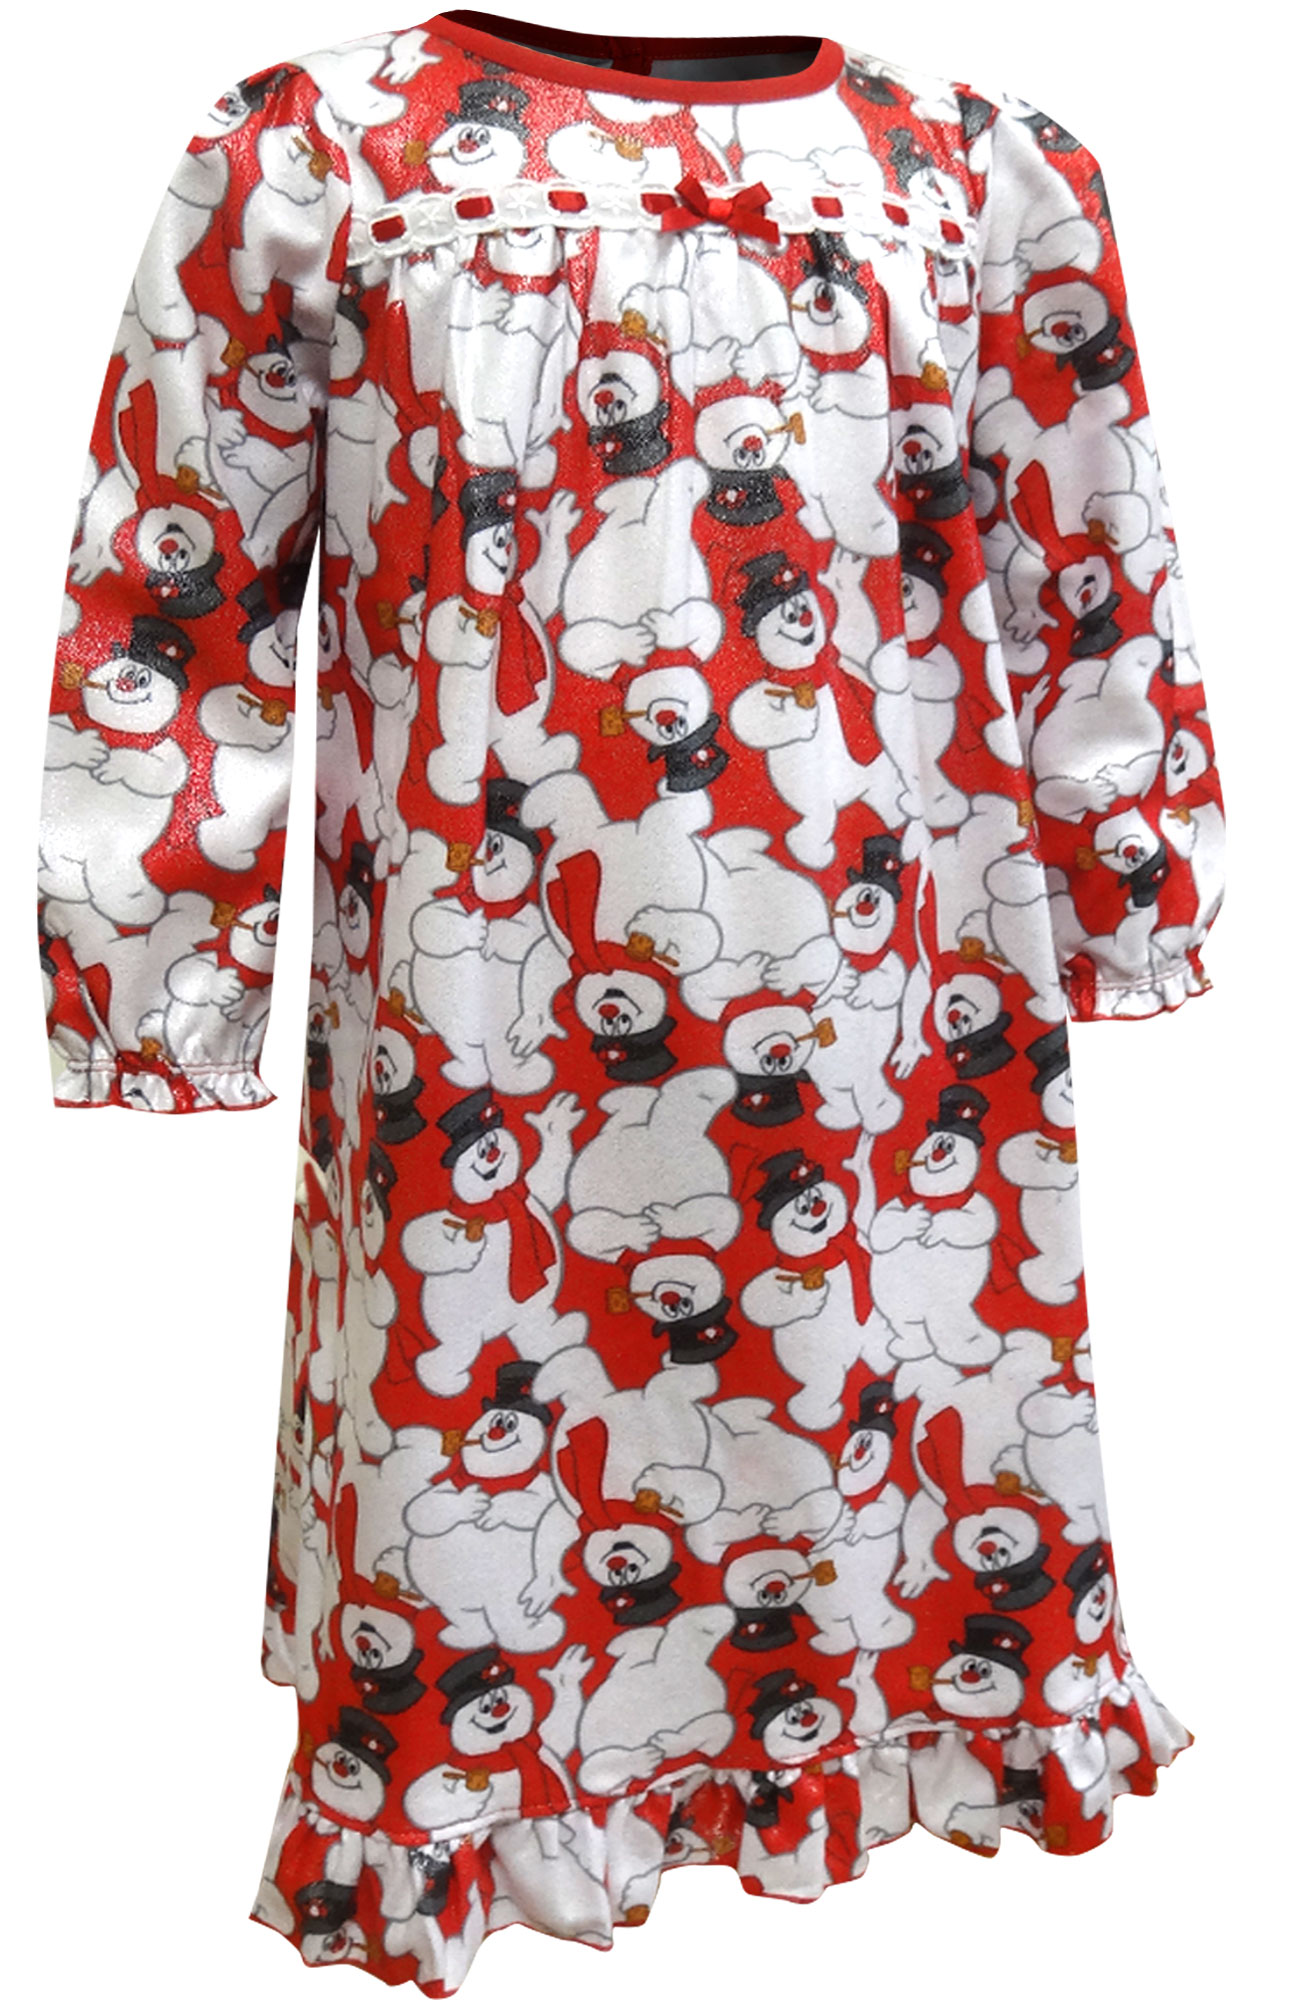 Image of Frosty The Snowman Traditional Toddler Flannel Nightgown for Girls